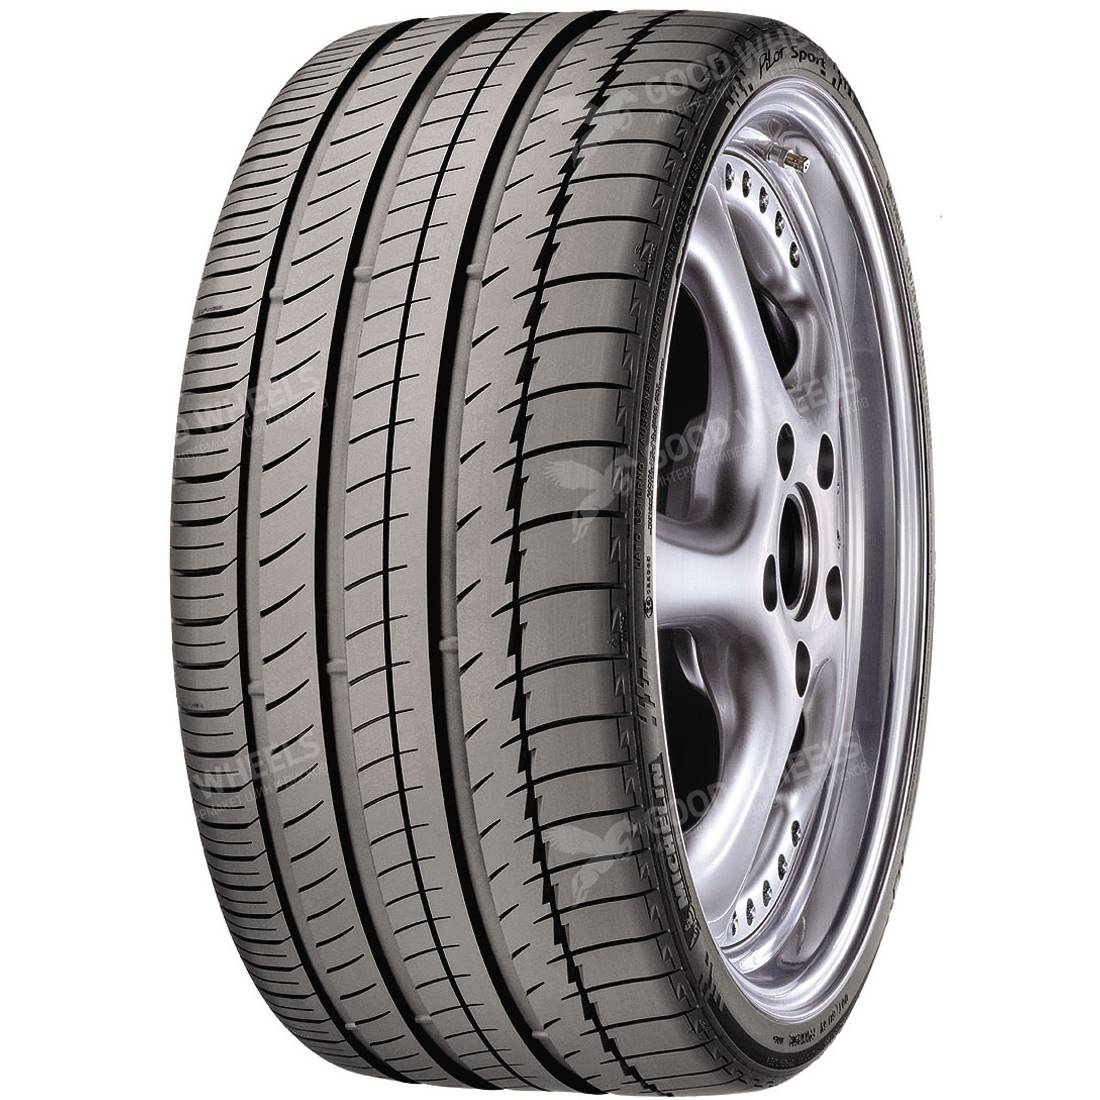 Michelin Pilot Sport 2 (PS2) 245/35 R18 92Y